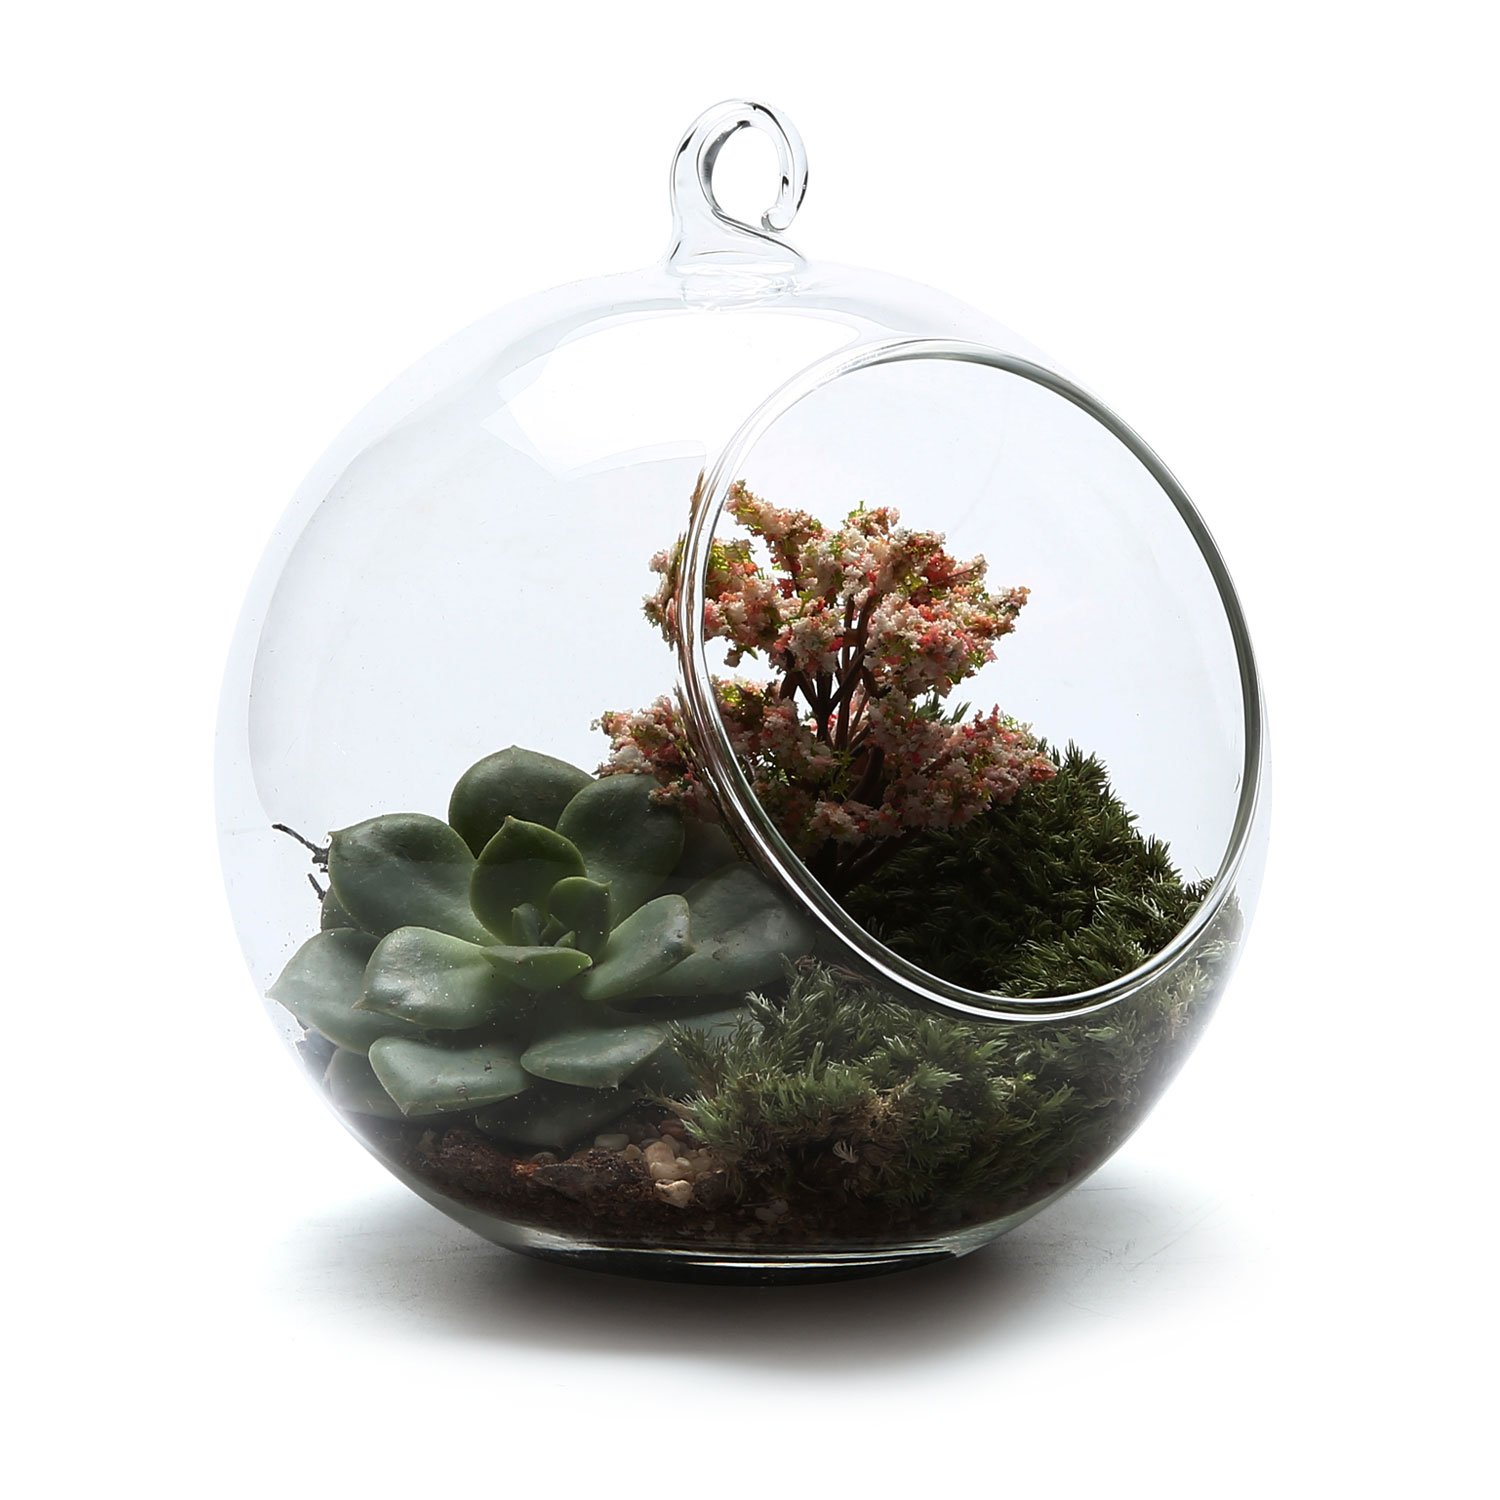 Rachel's choice 5.75''Glass Hanging Plant Terrariums Flower Air Plant Pot Container Home Office Wedding Decoration Votive Holder Sucuulent Cactus Plant Pots by T4U